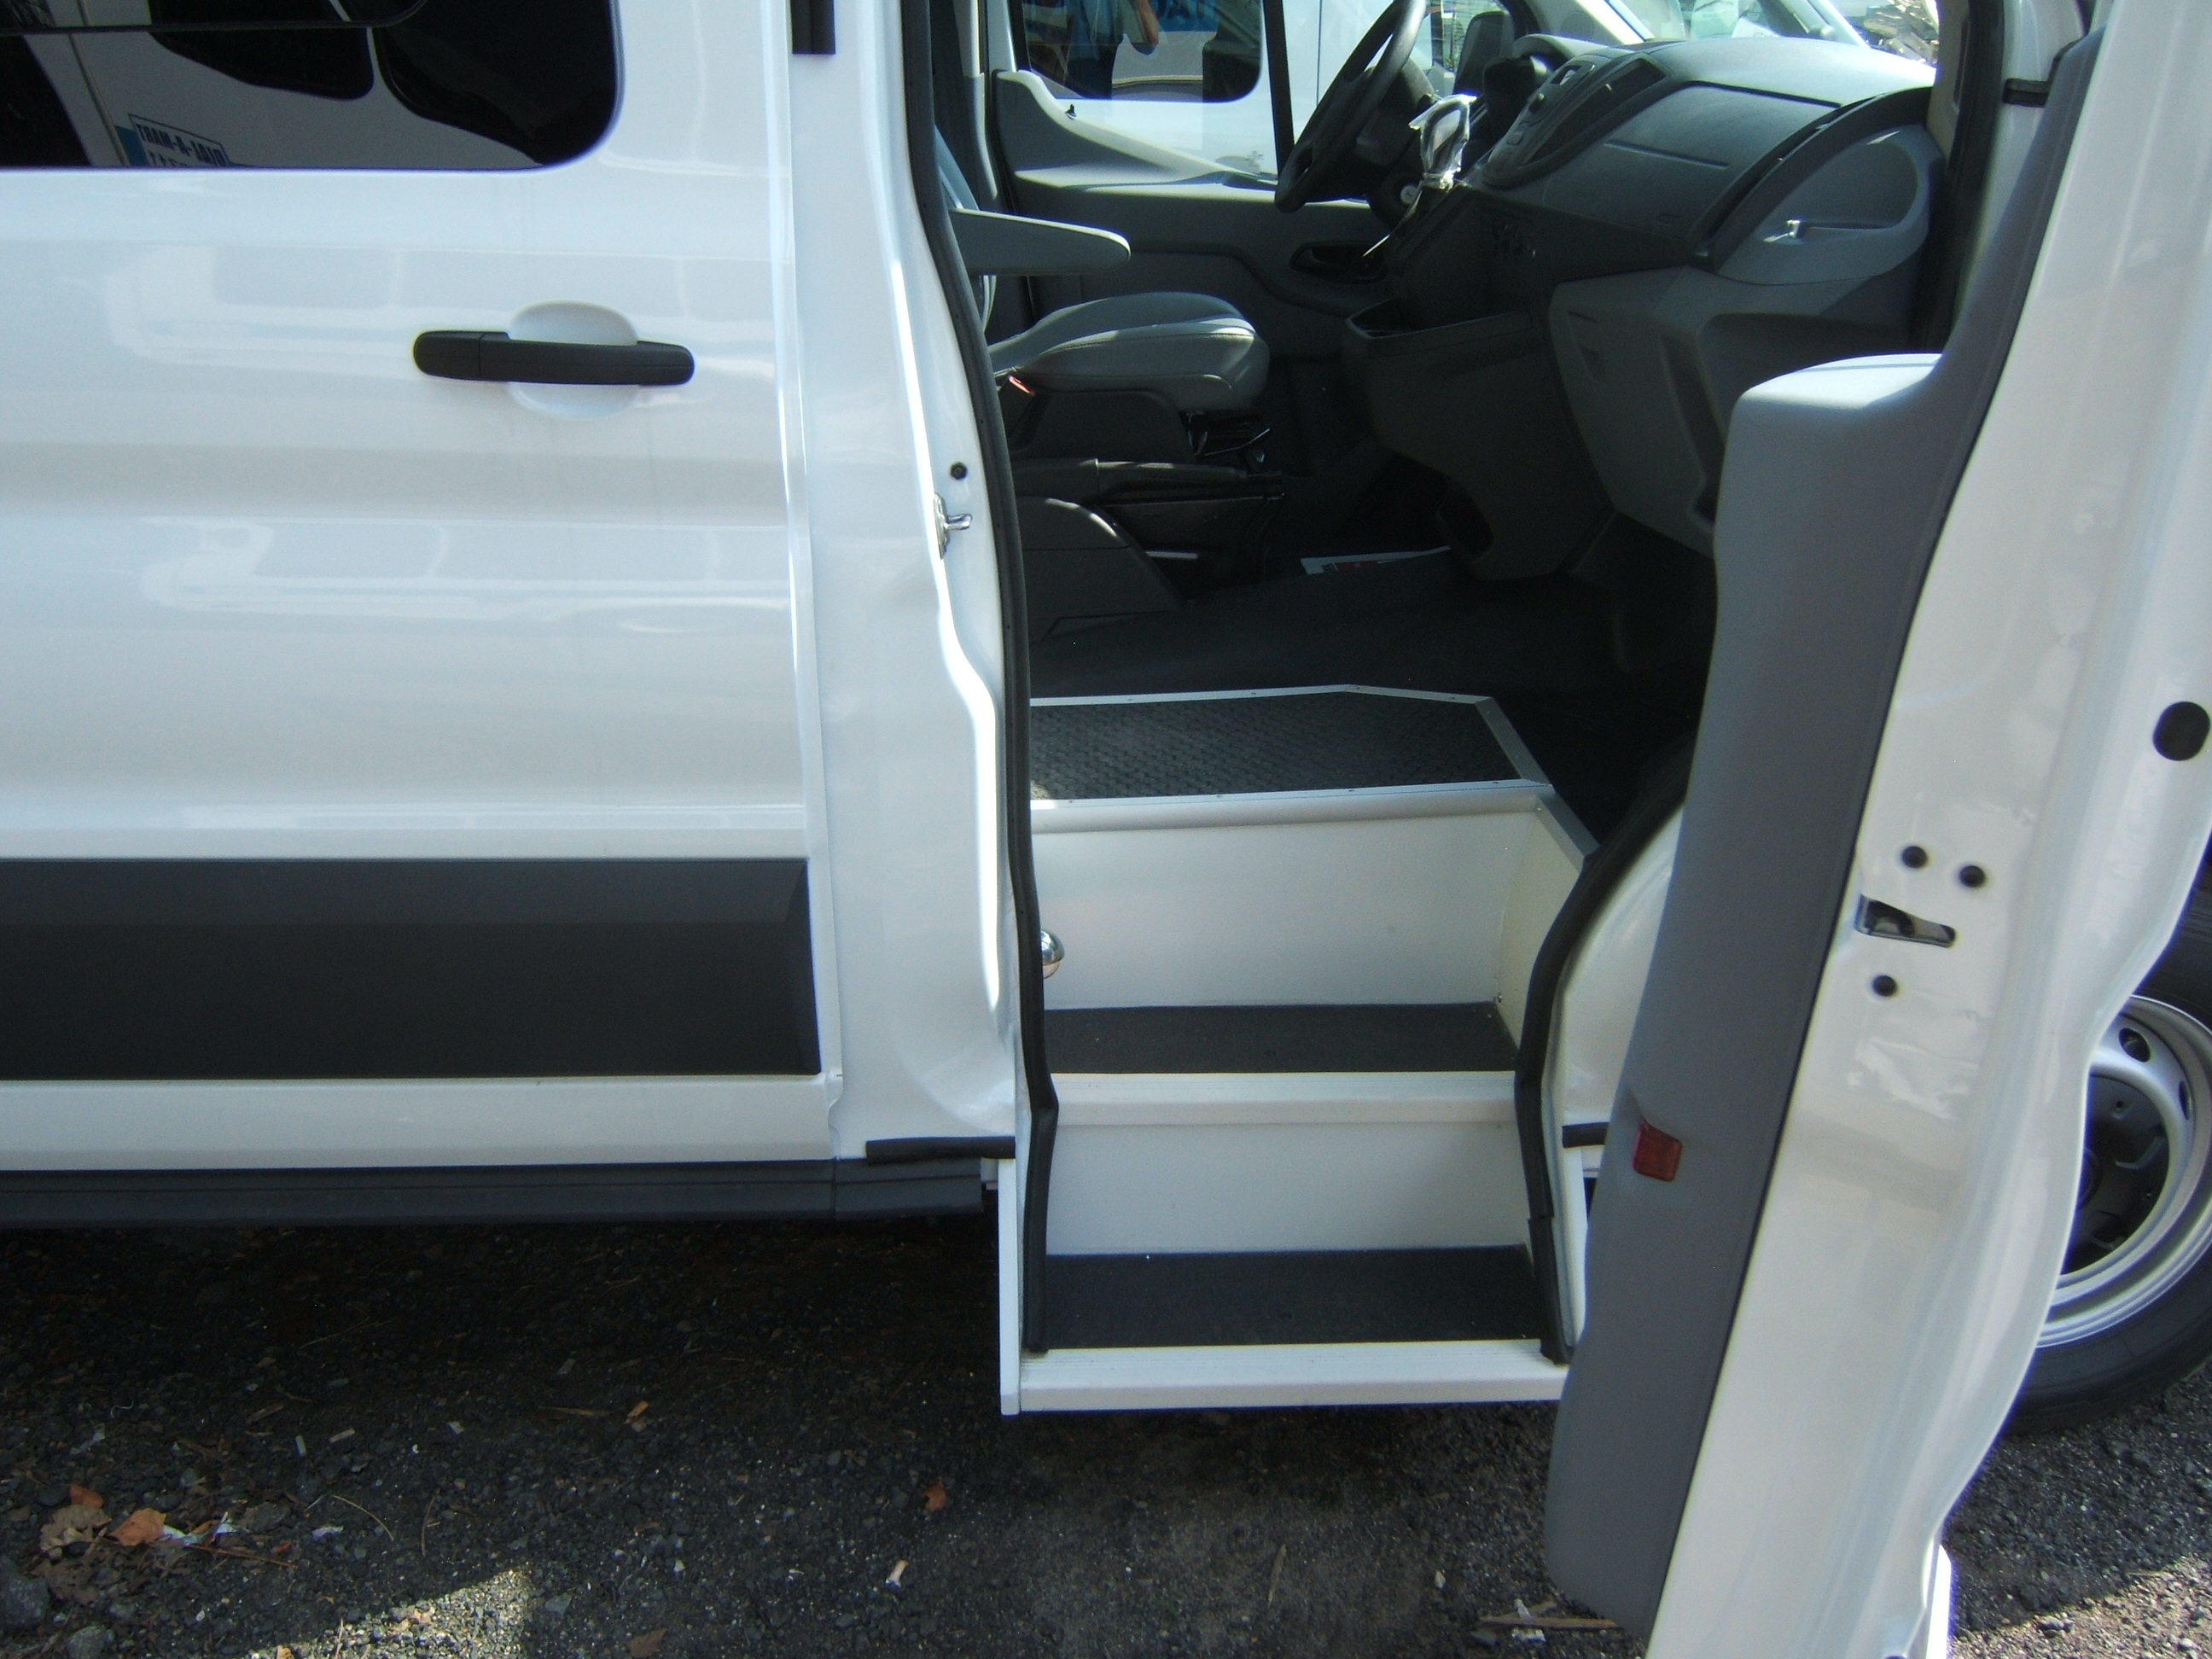 Steps For Buses : Steps for handicap vans pictures to pin on pinterest